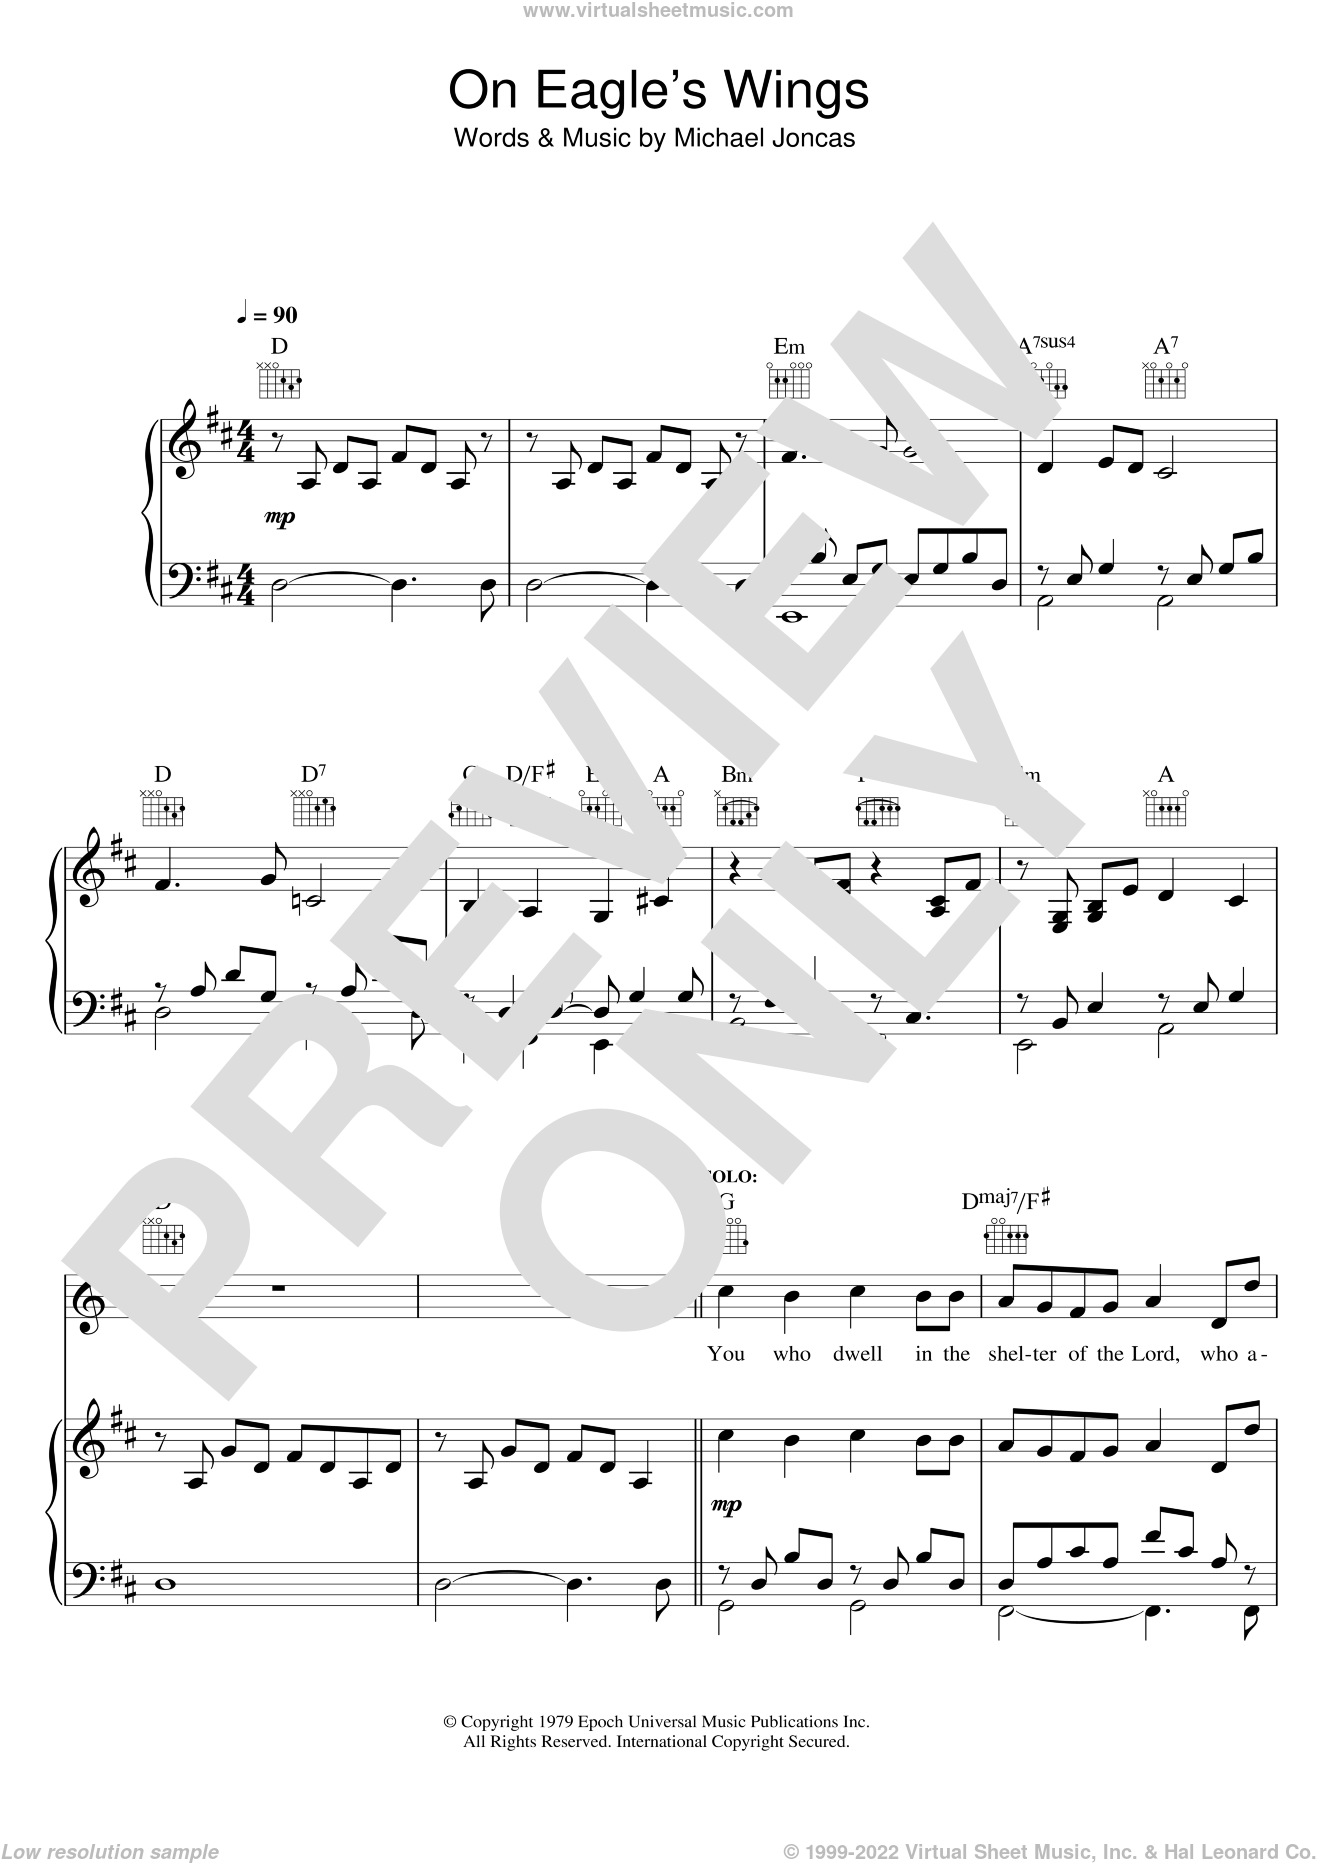 On Eagle's Wings sheet music for voice, piano or guitar by Michael Joncas, intermediate skill level